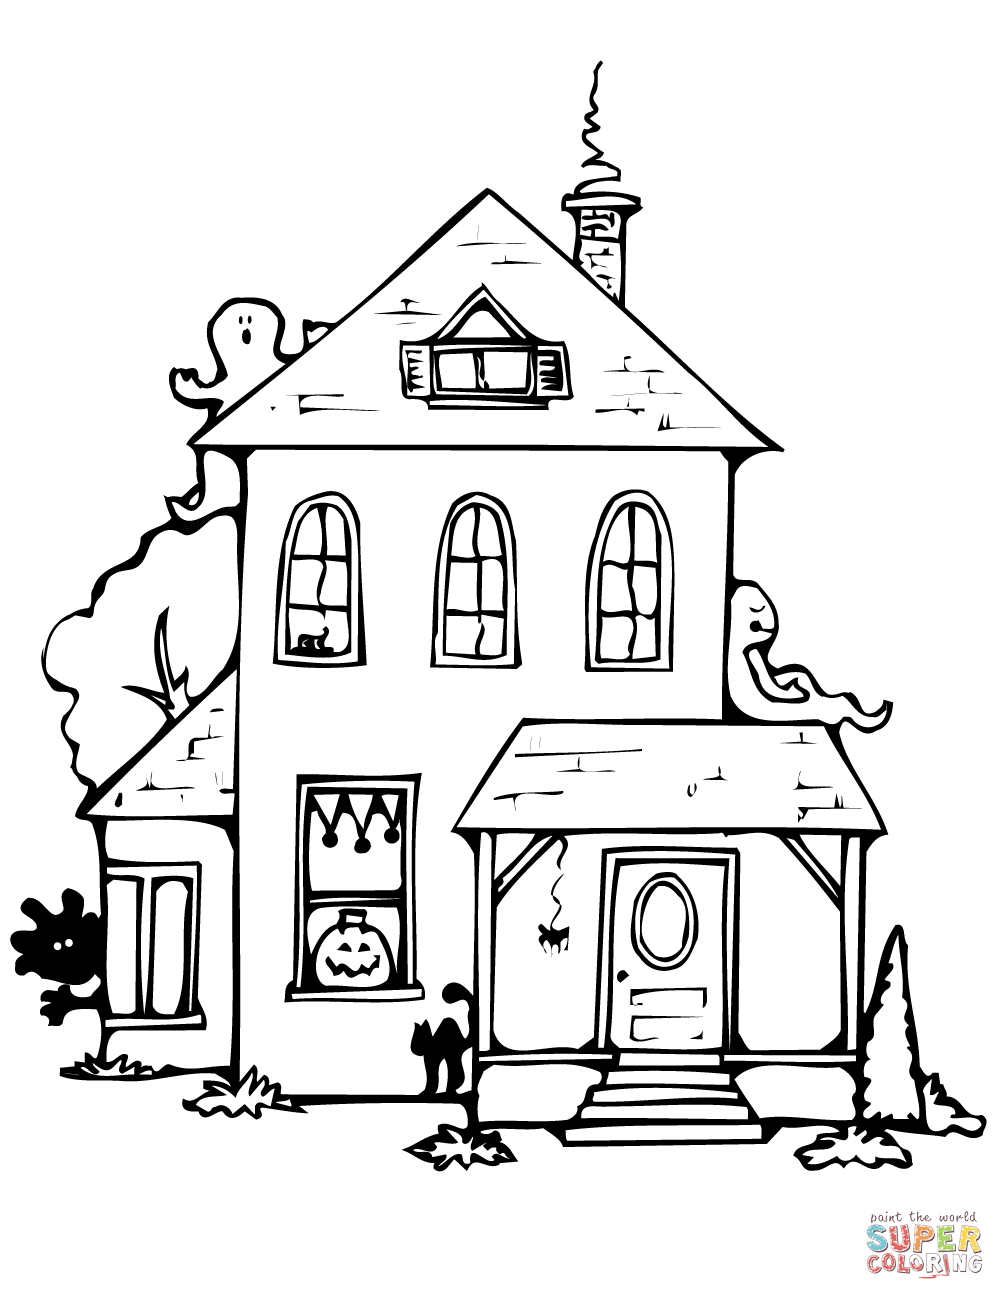 simple haunted house coloring pages simple haunted house drawing at getdrawings free download pages coloring simple haunted house